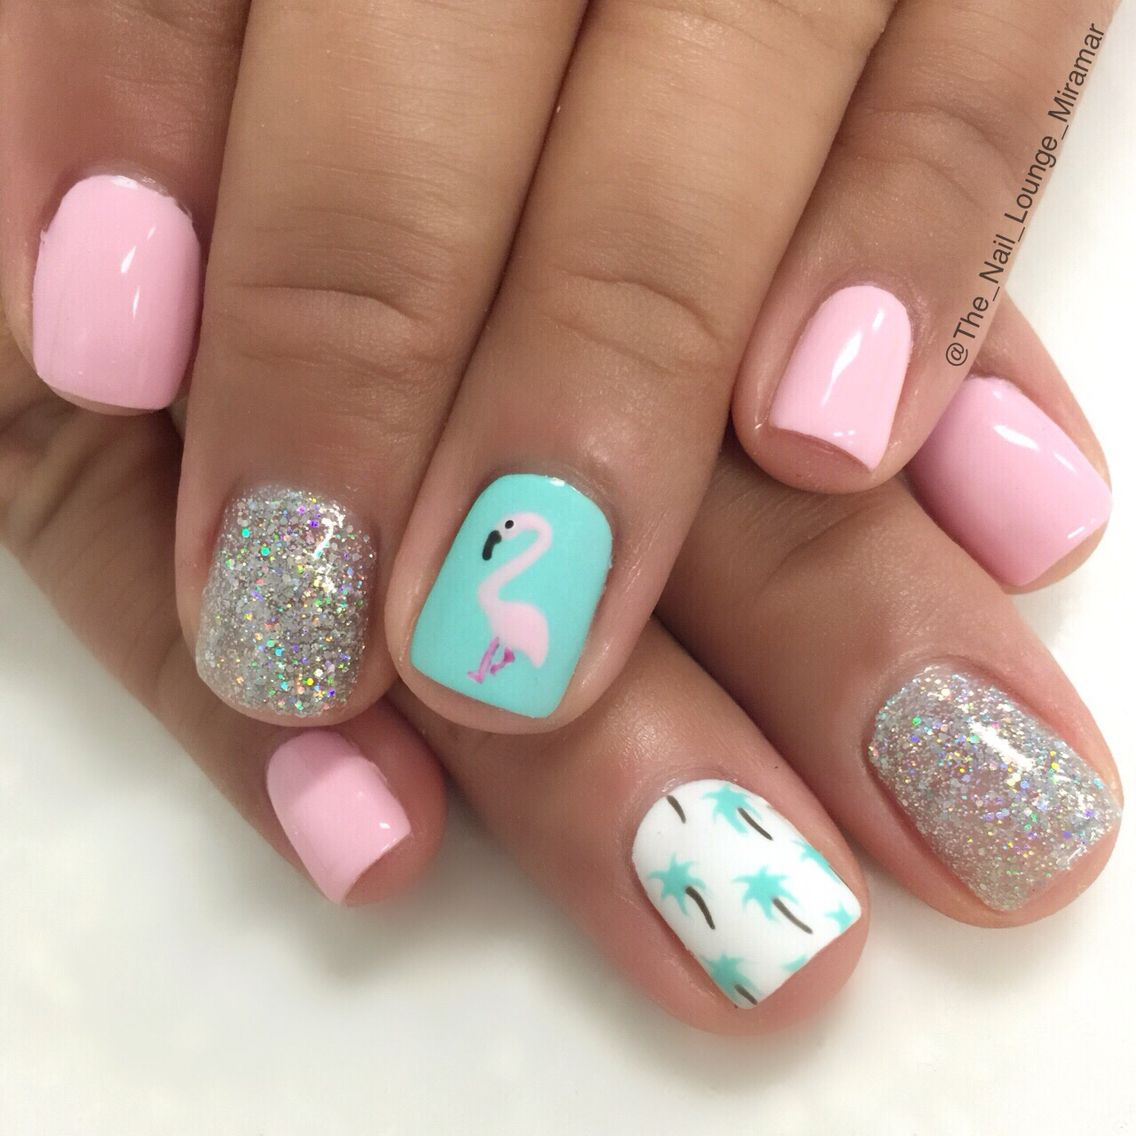 Hervorragend Flamingo palmtrees summer vacation nails inspired by McKenna bleu  SY36